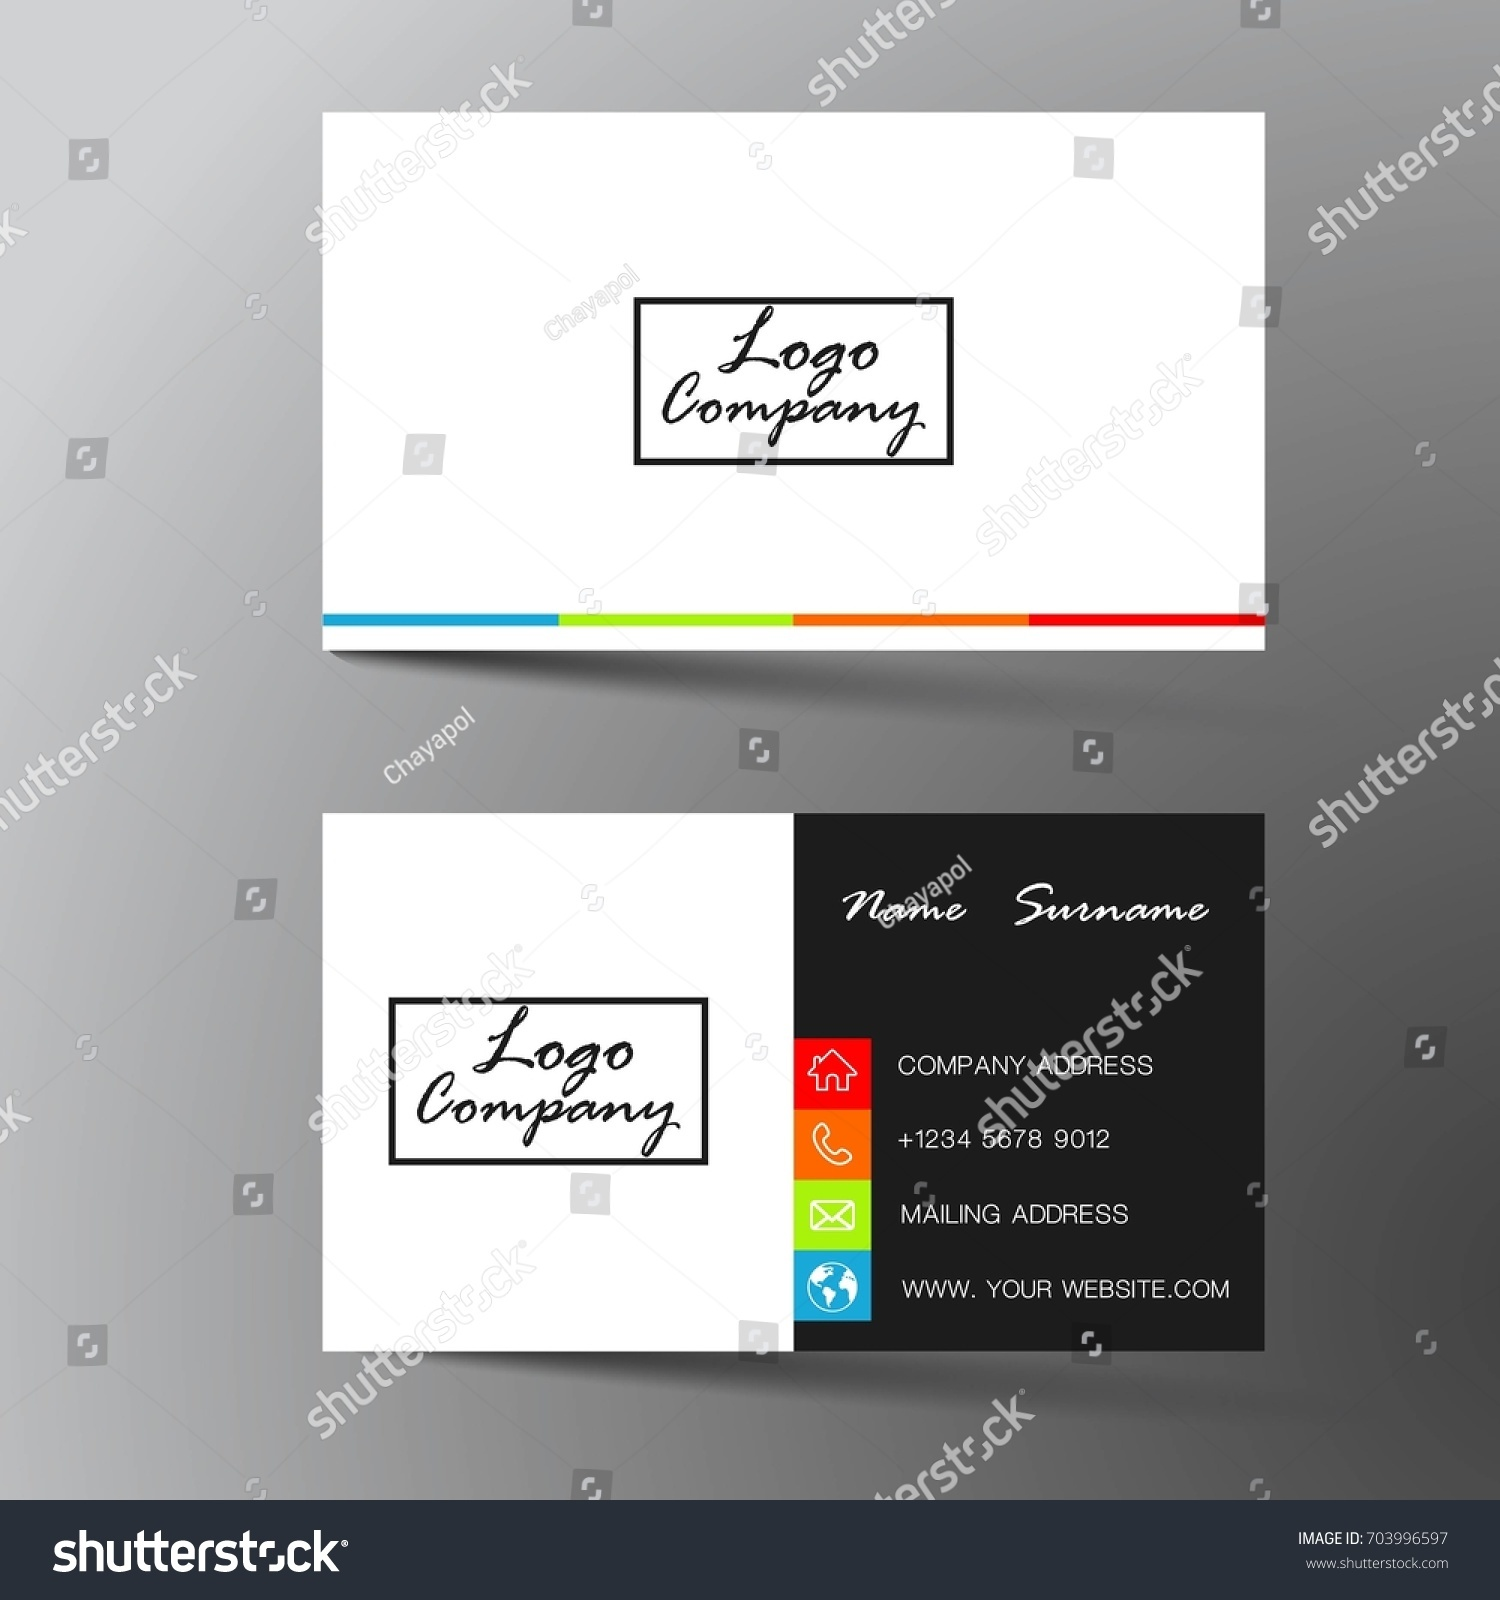 Modern Business Card Design Inspiration Abstractflat Stock Vector ...